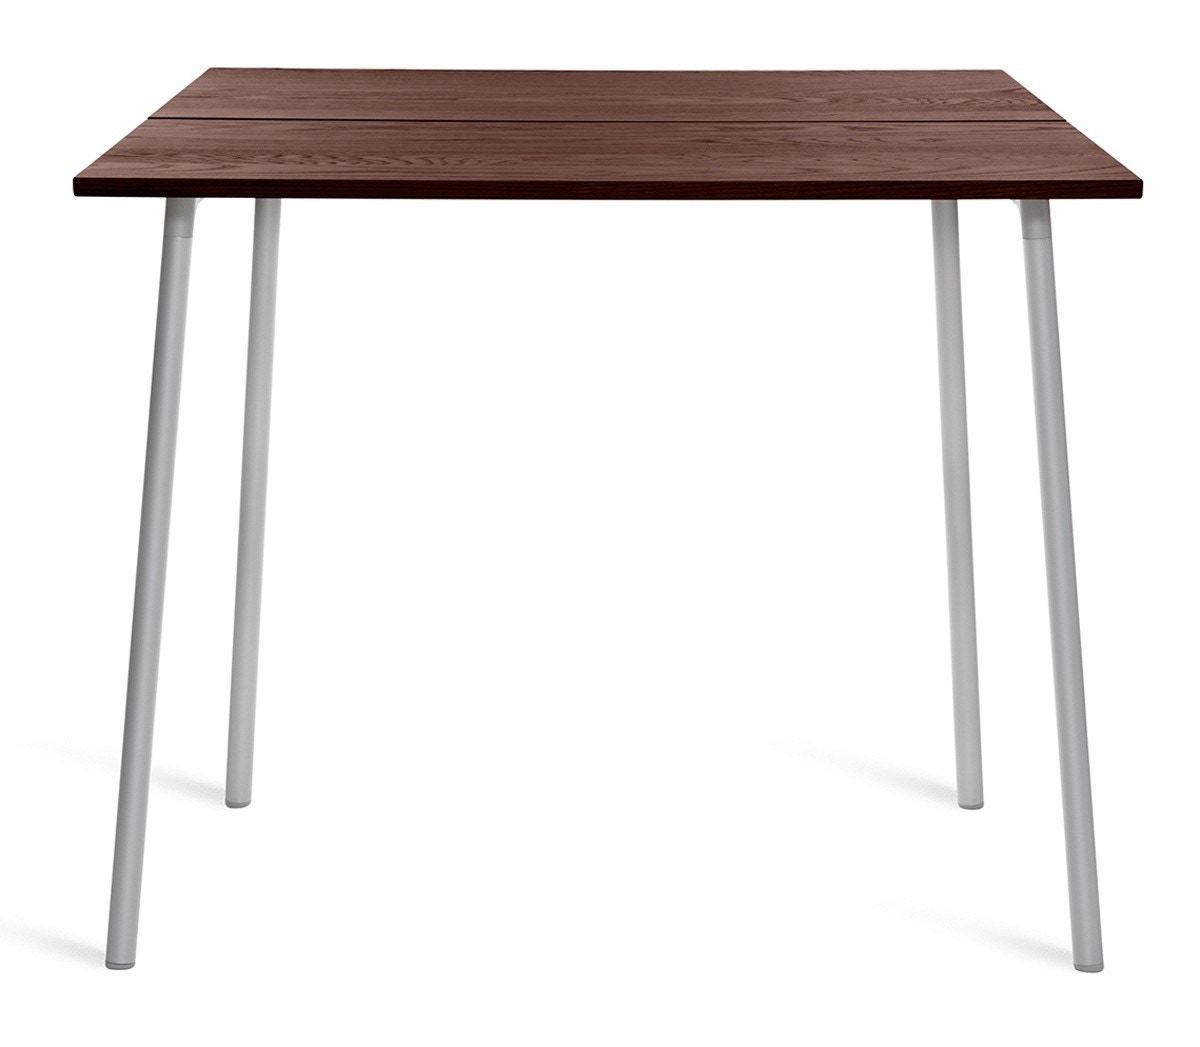 Emeco High Run Table 96 Inch